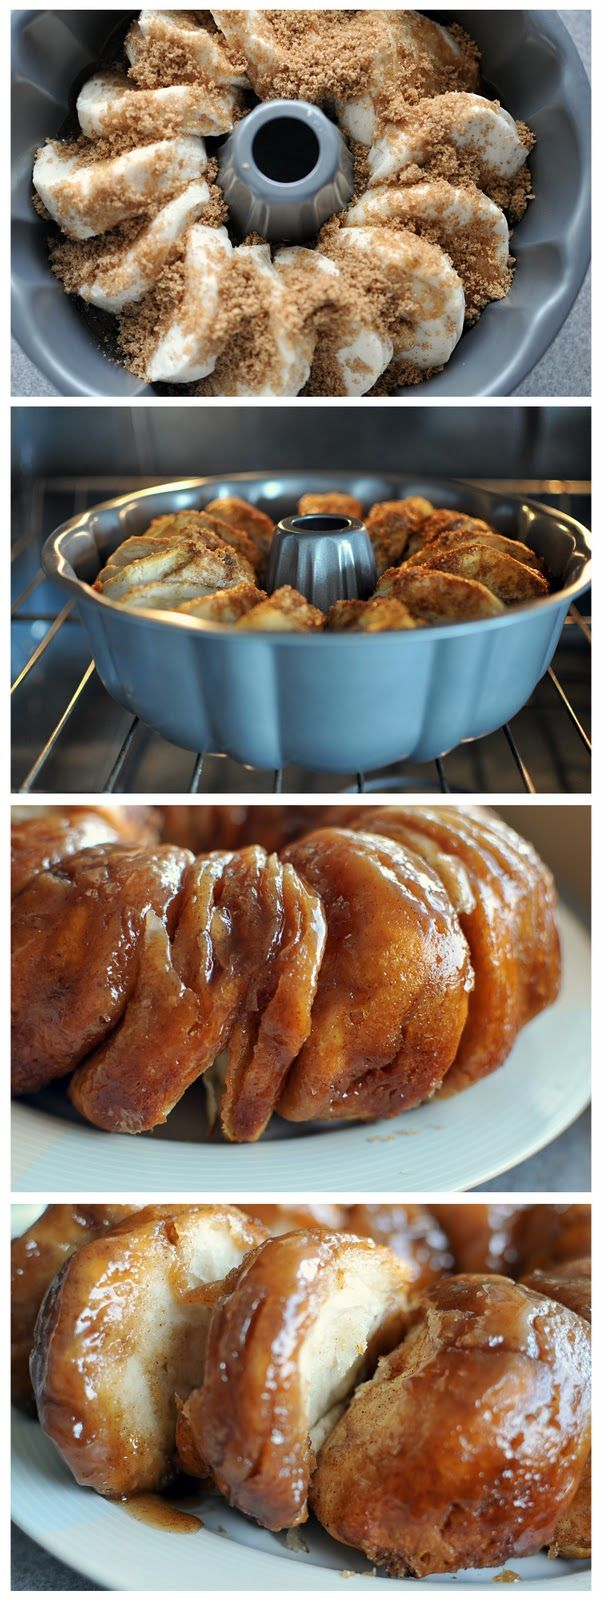 Monkey bread!! My best friend and I made this all the time in college. . . minus the nuts!